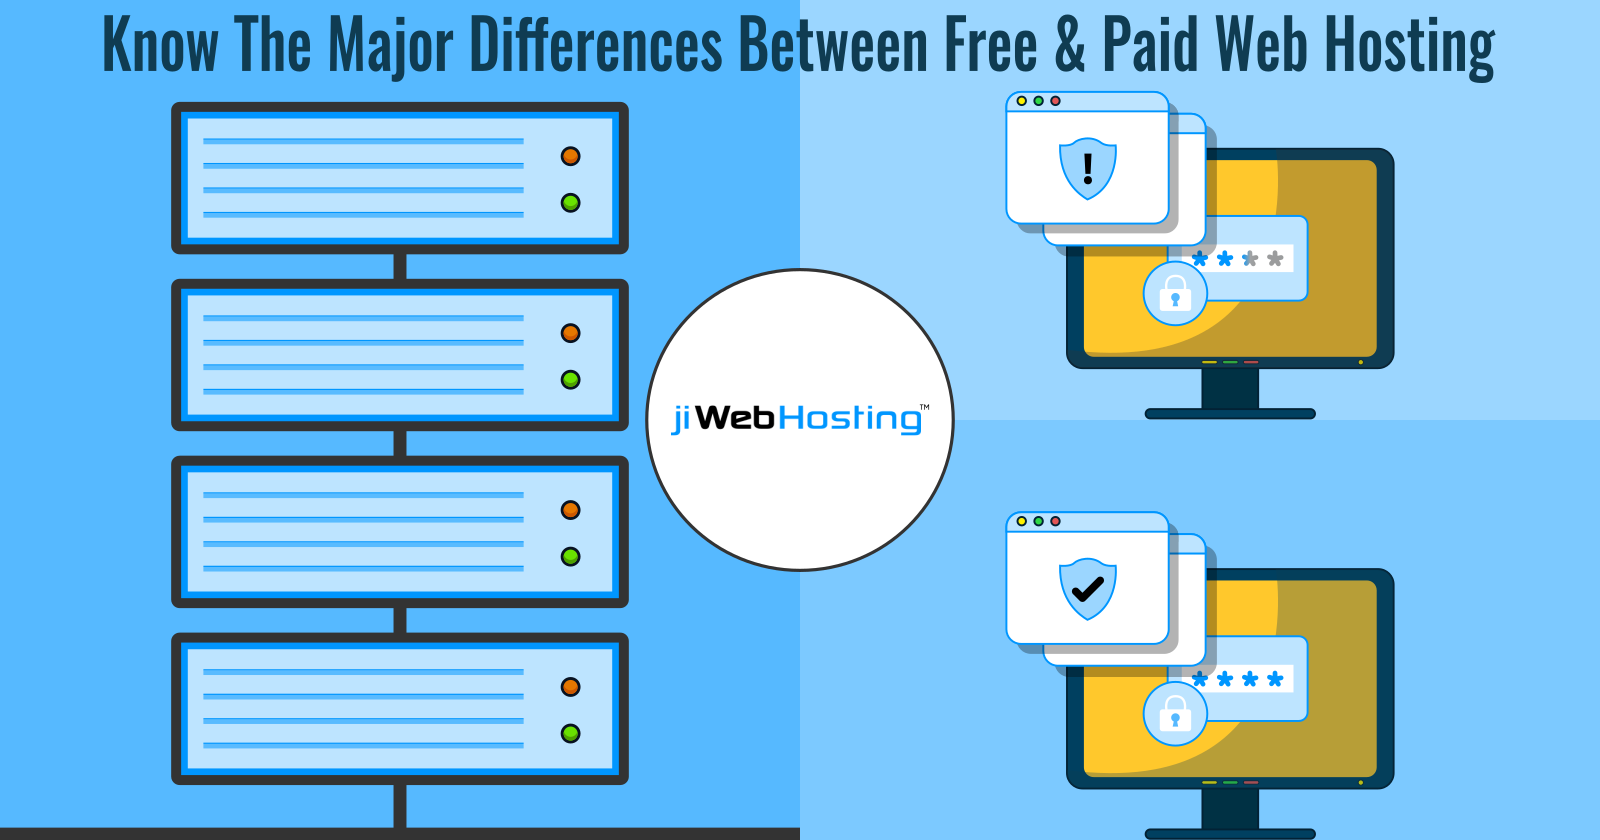 Know The Major Differences Between Free & Paid Web Hosting